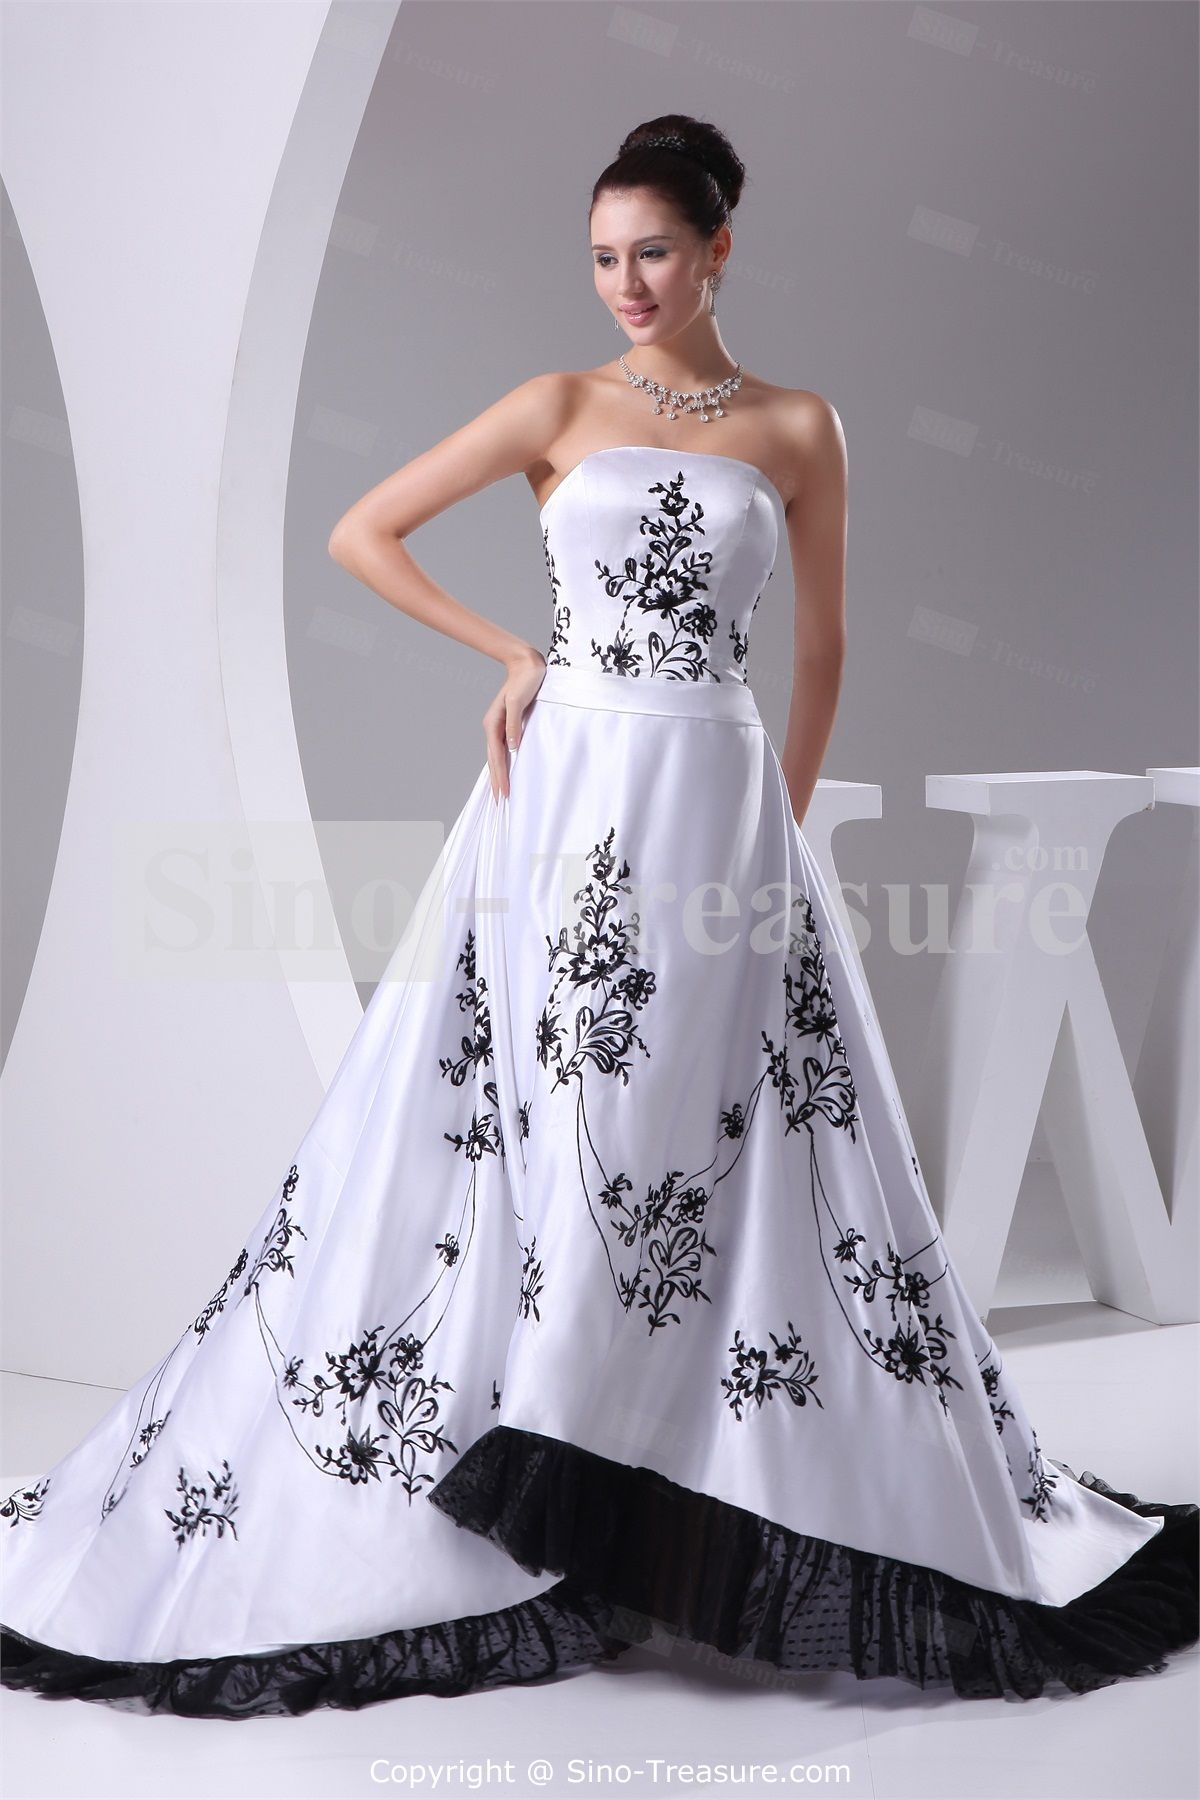 Black white strapless puddle train satin church a line wedding black white strapless puddle train satin church a line wedding dress wholesale price ombrellifo Image collections